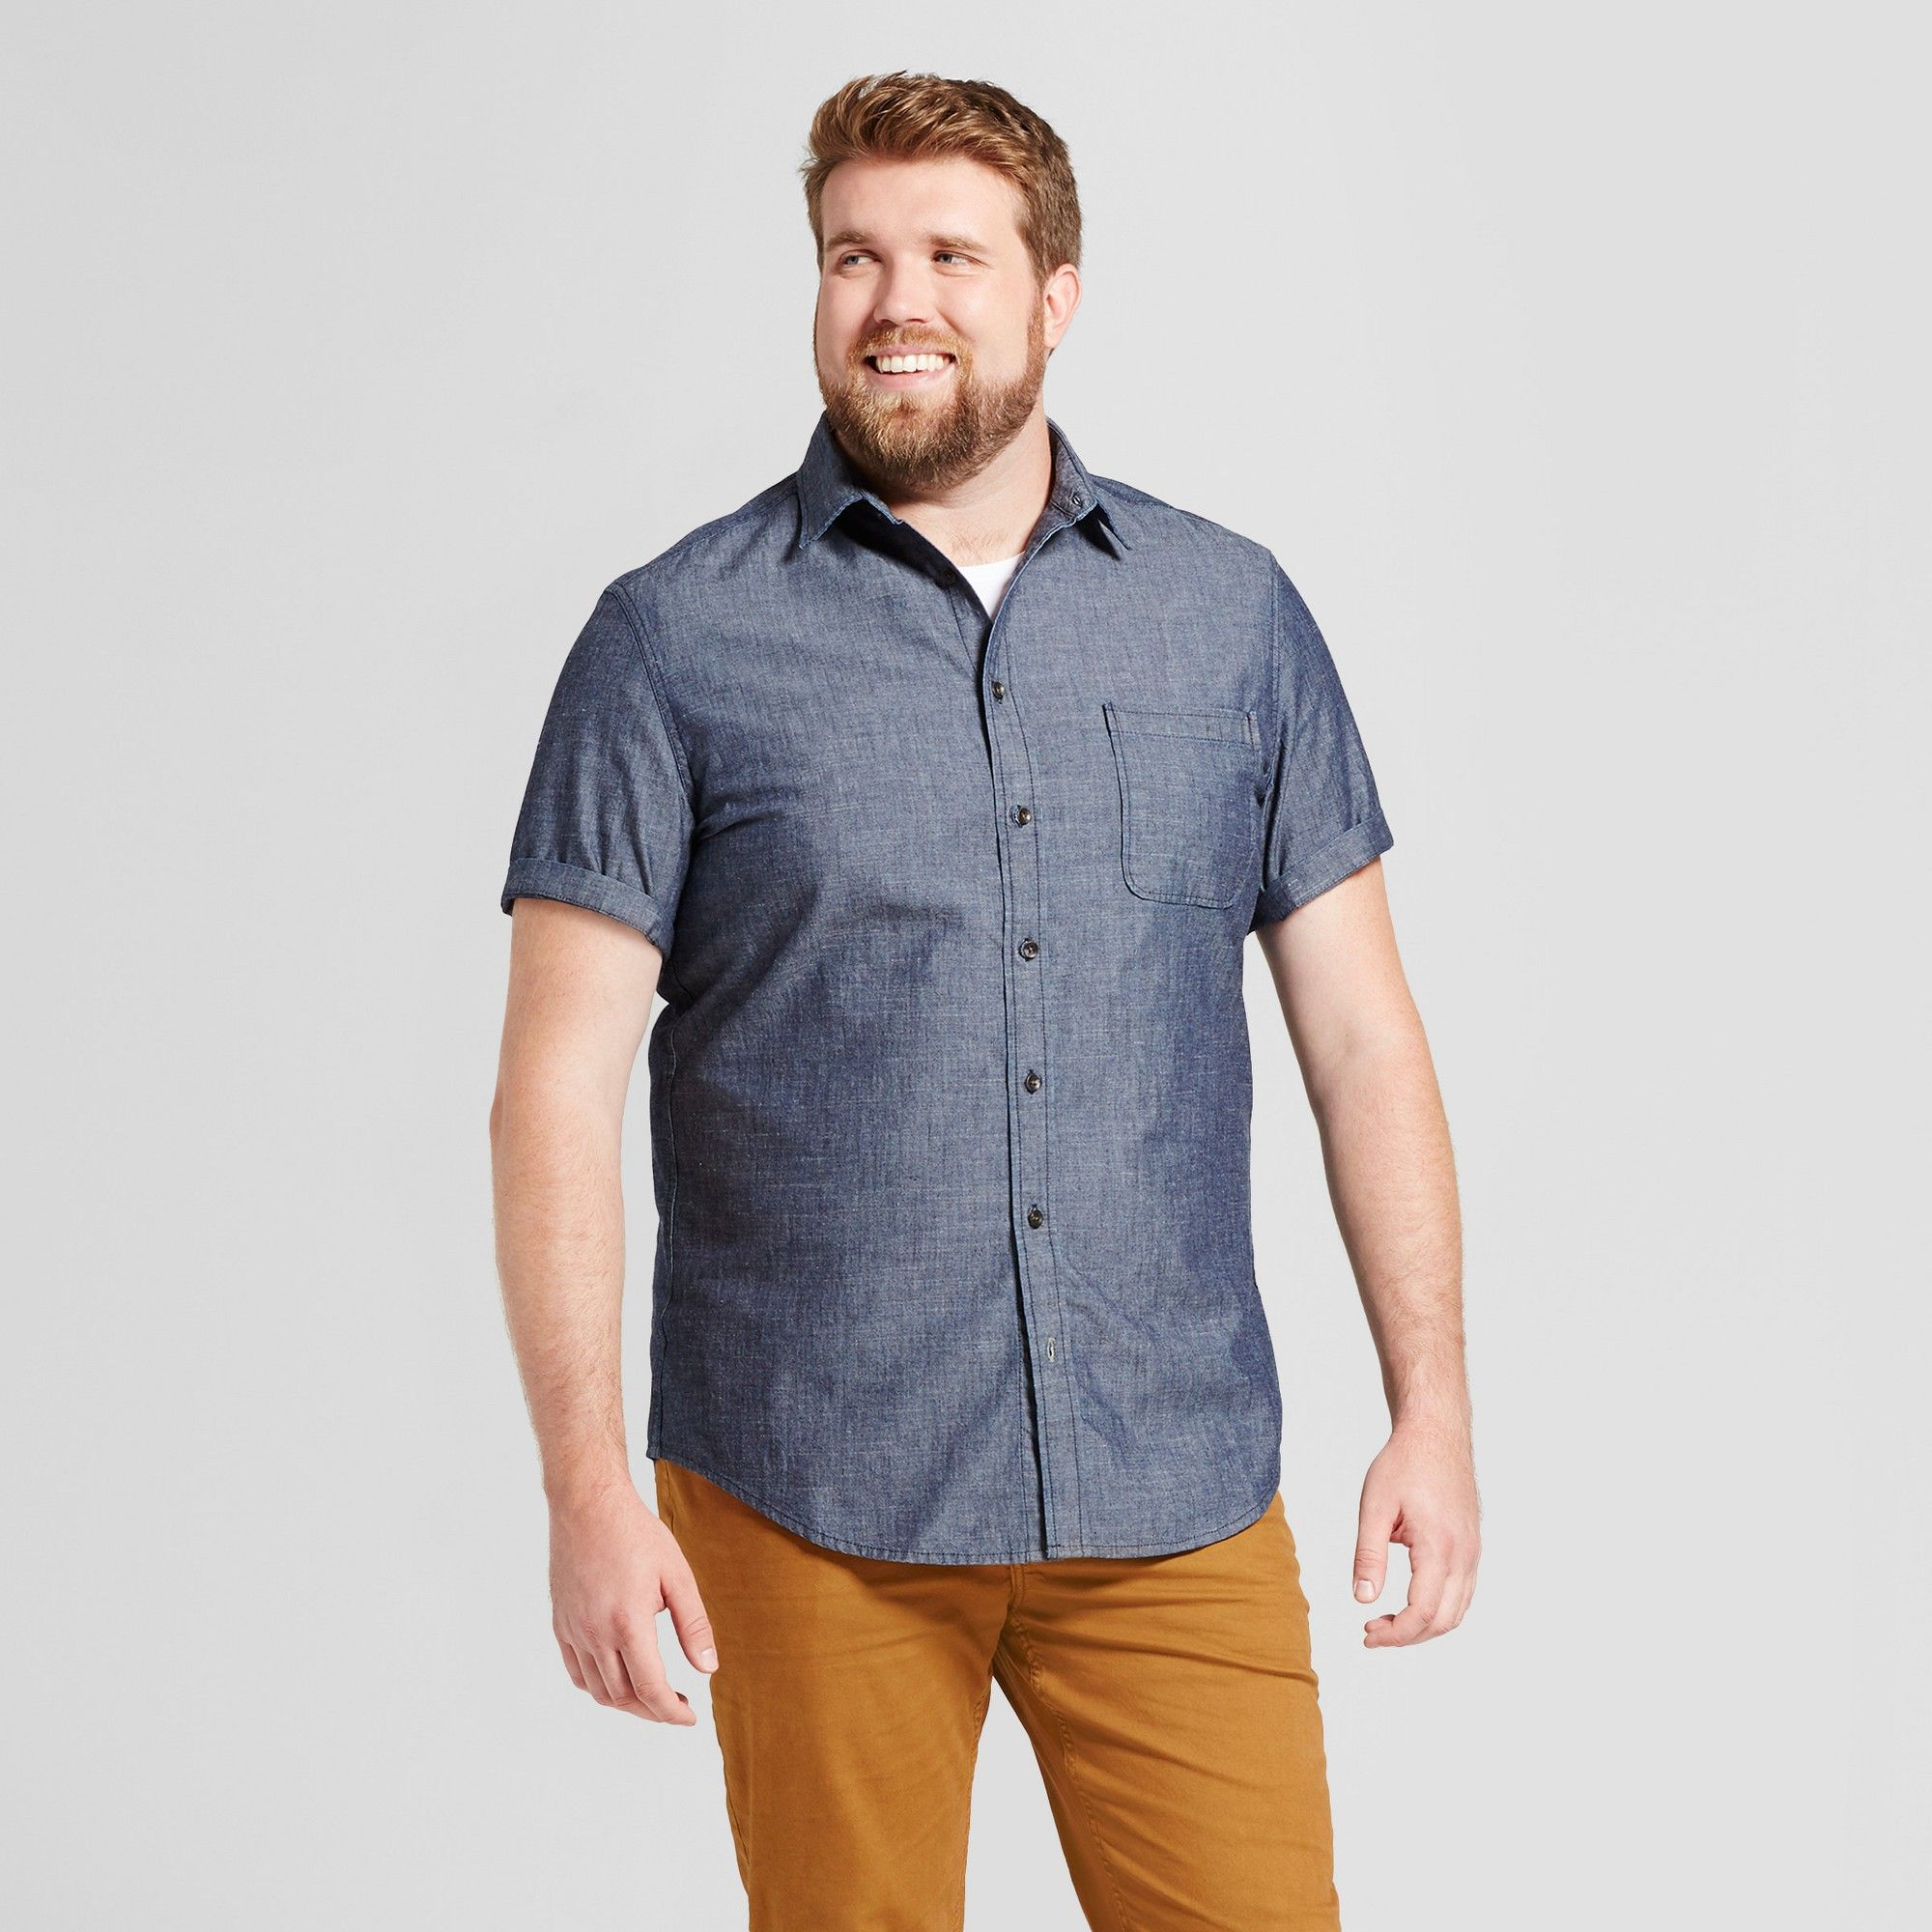 c7e21bc8dff Big And Tall Short Sleeve Denim Shirt - Cotswold Hire